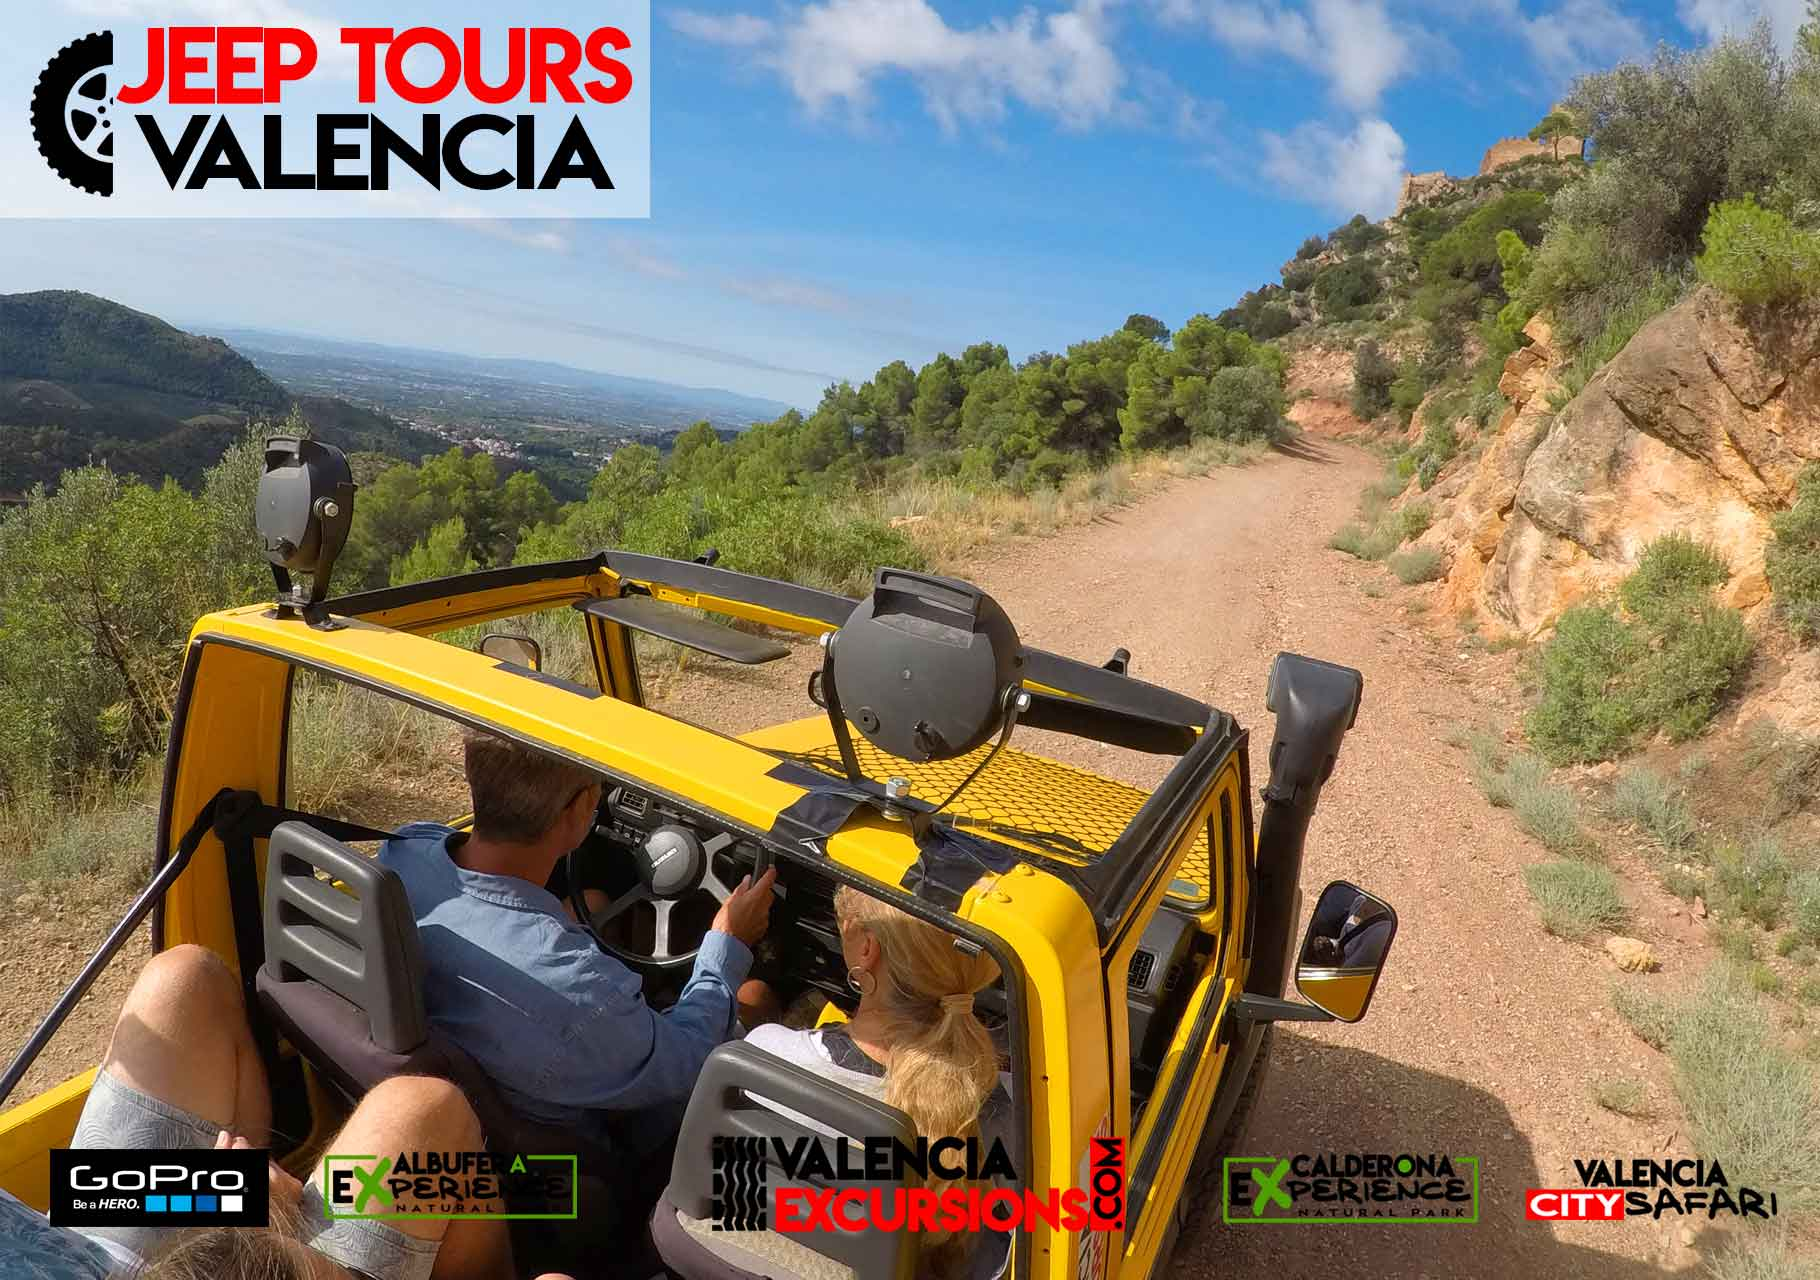 Mountain Jeep  Adventure in Calderona National Park Valencia. Guided Tour